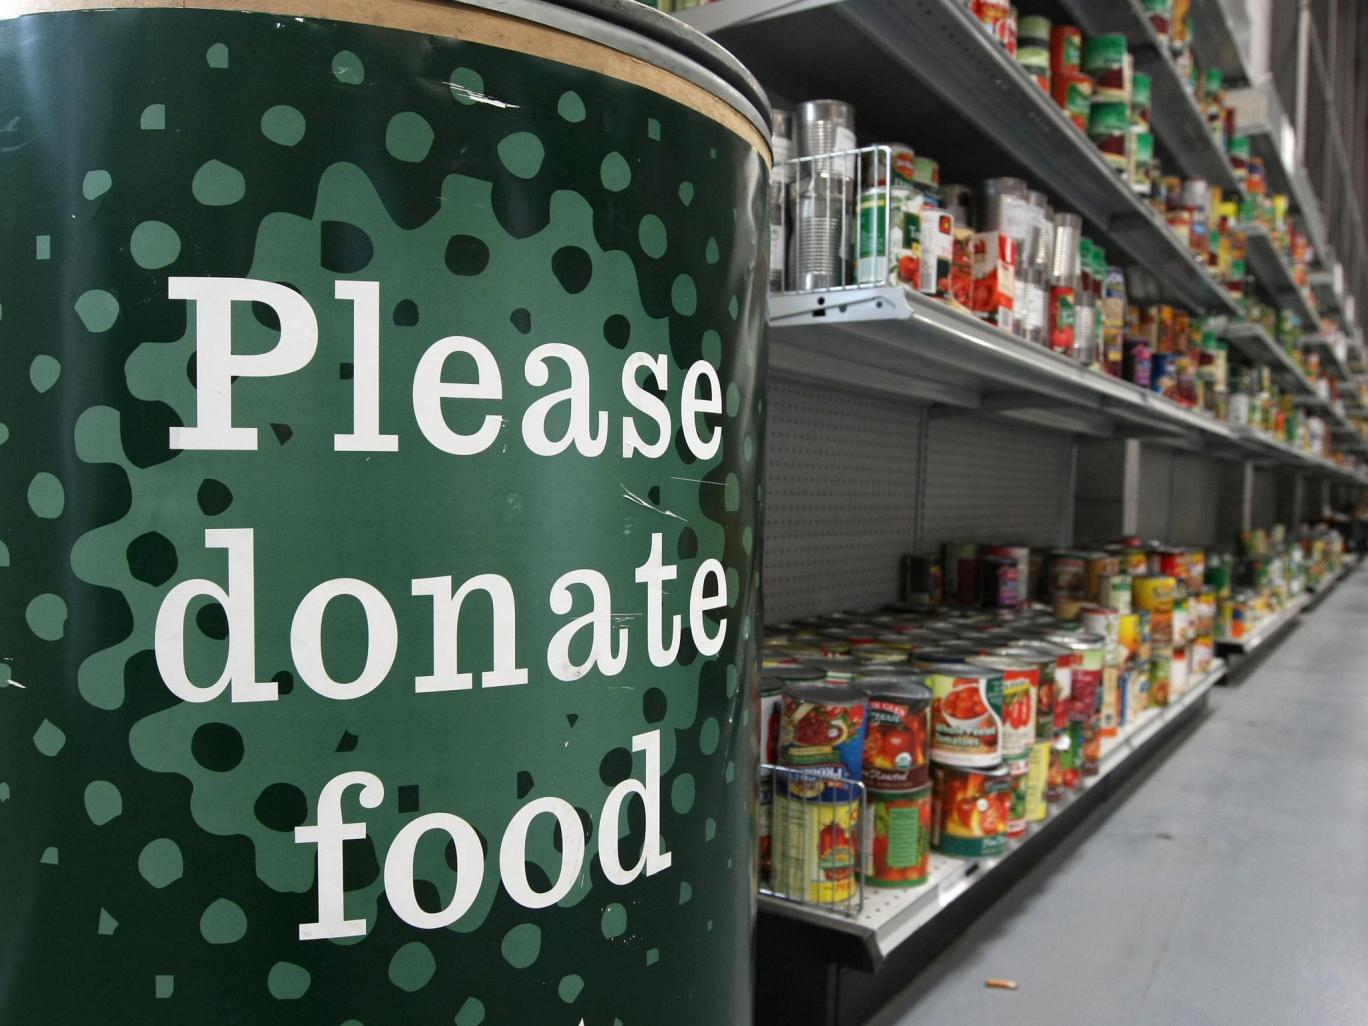 492, 600 people were given three days worth of food by the Trussell Trust food banks between April and September this year